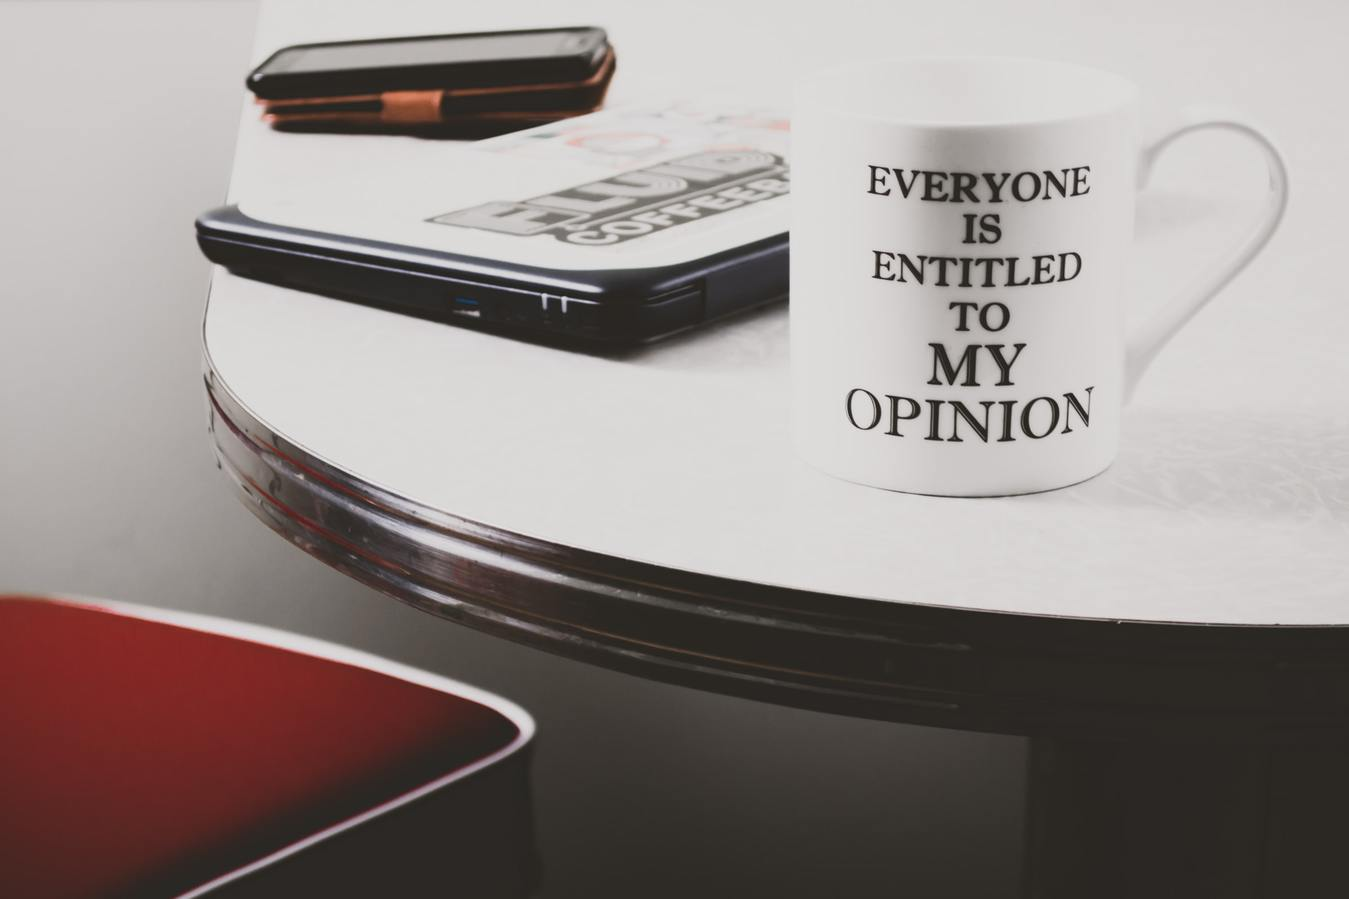 Opinion quote on a mug on a table